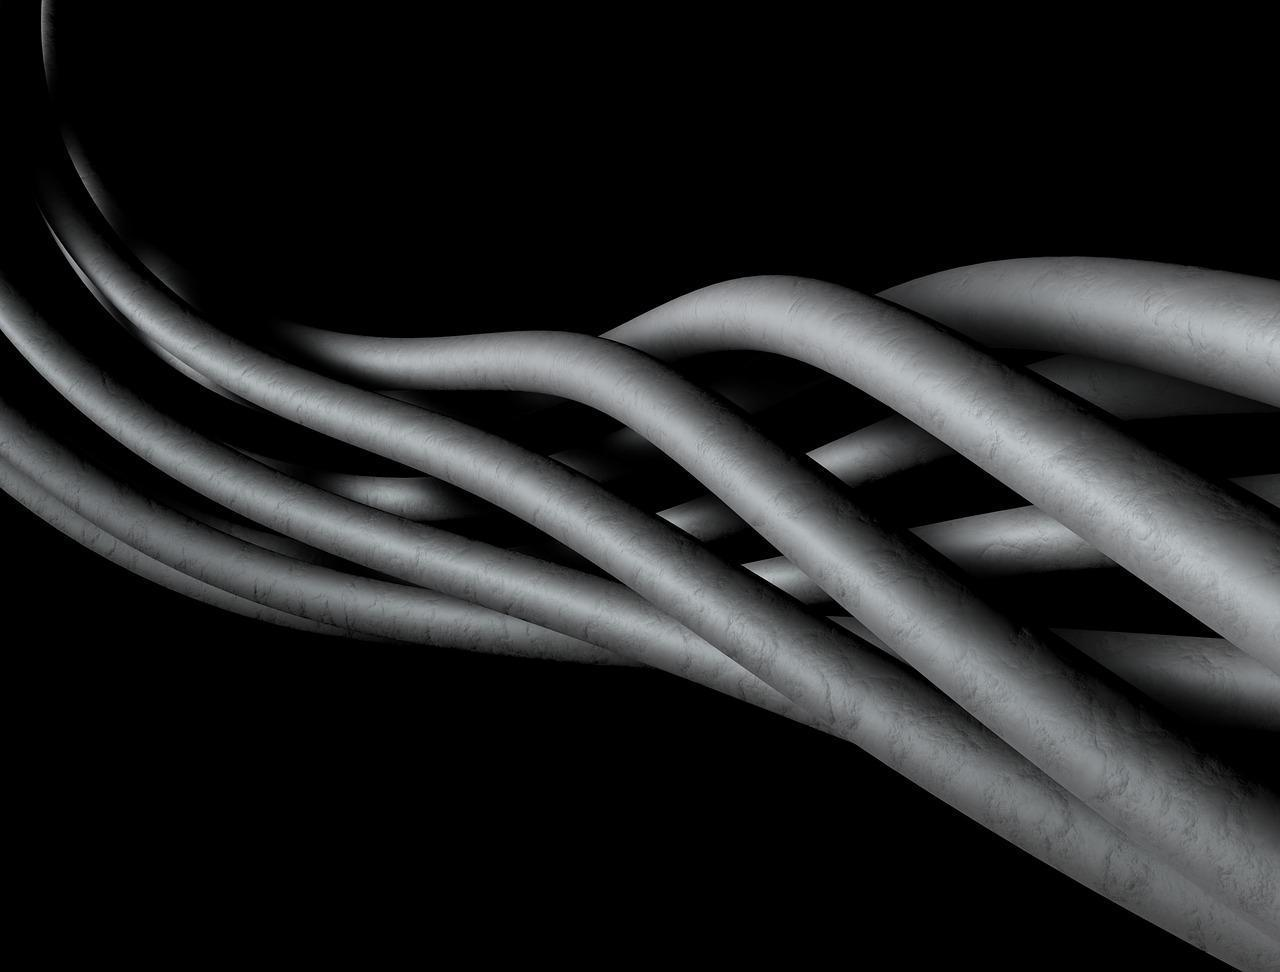 cables-1170504_1280